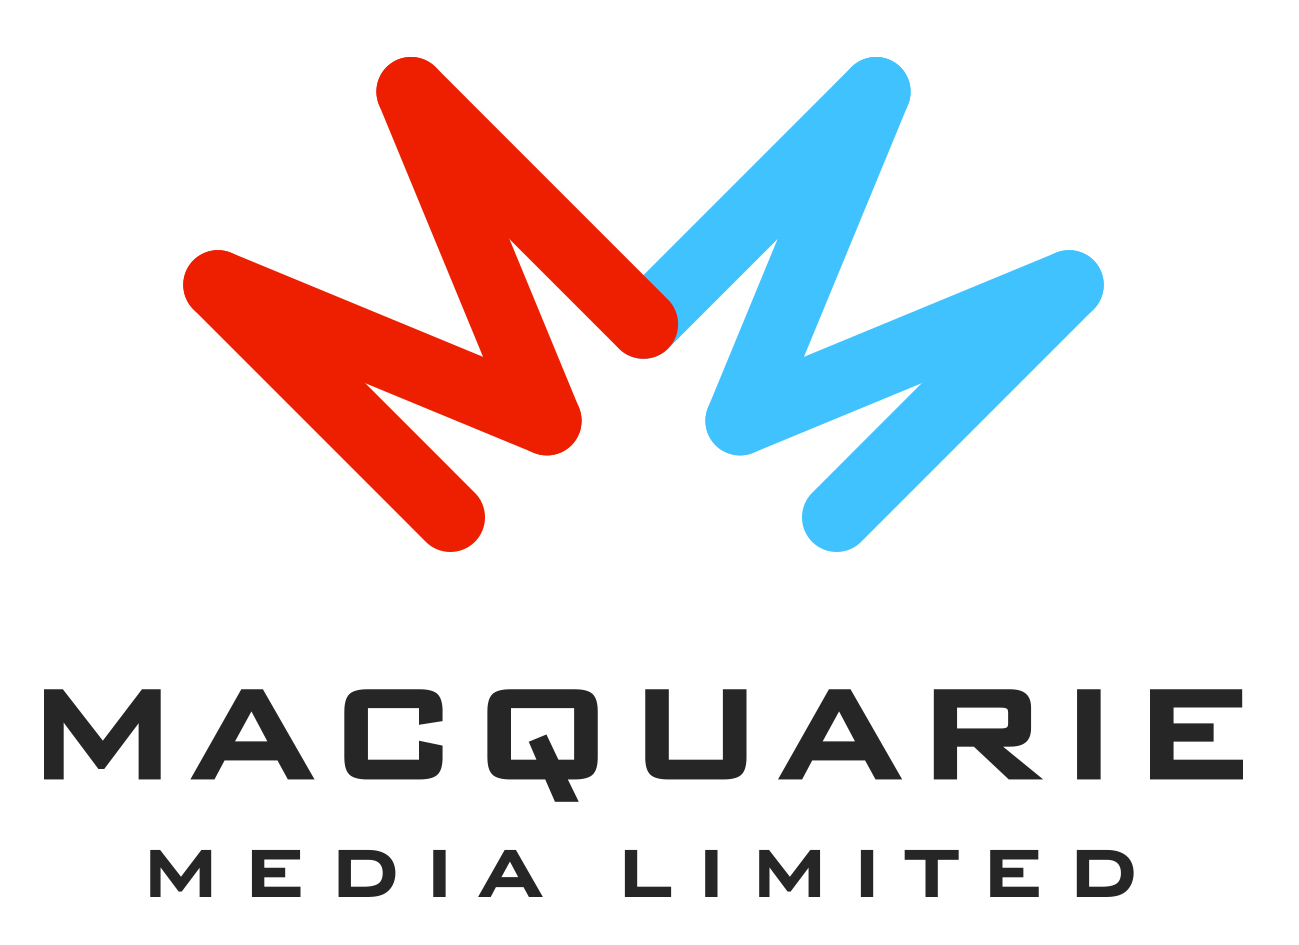 Macquarie_Media_CMYK